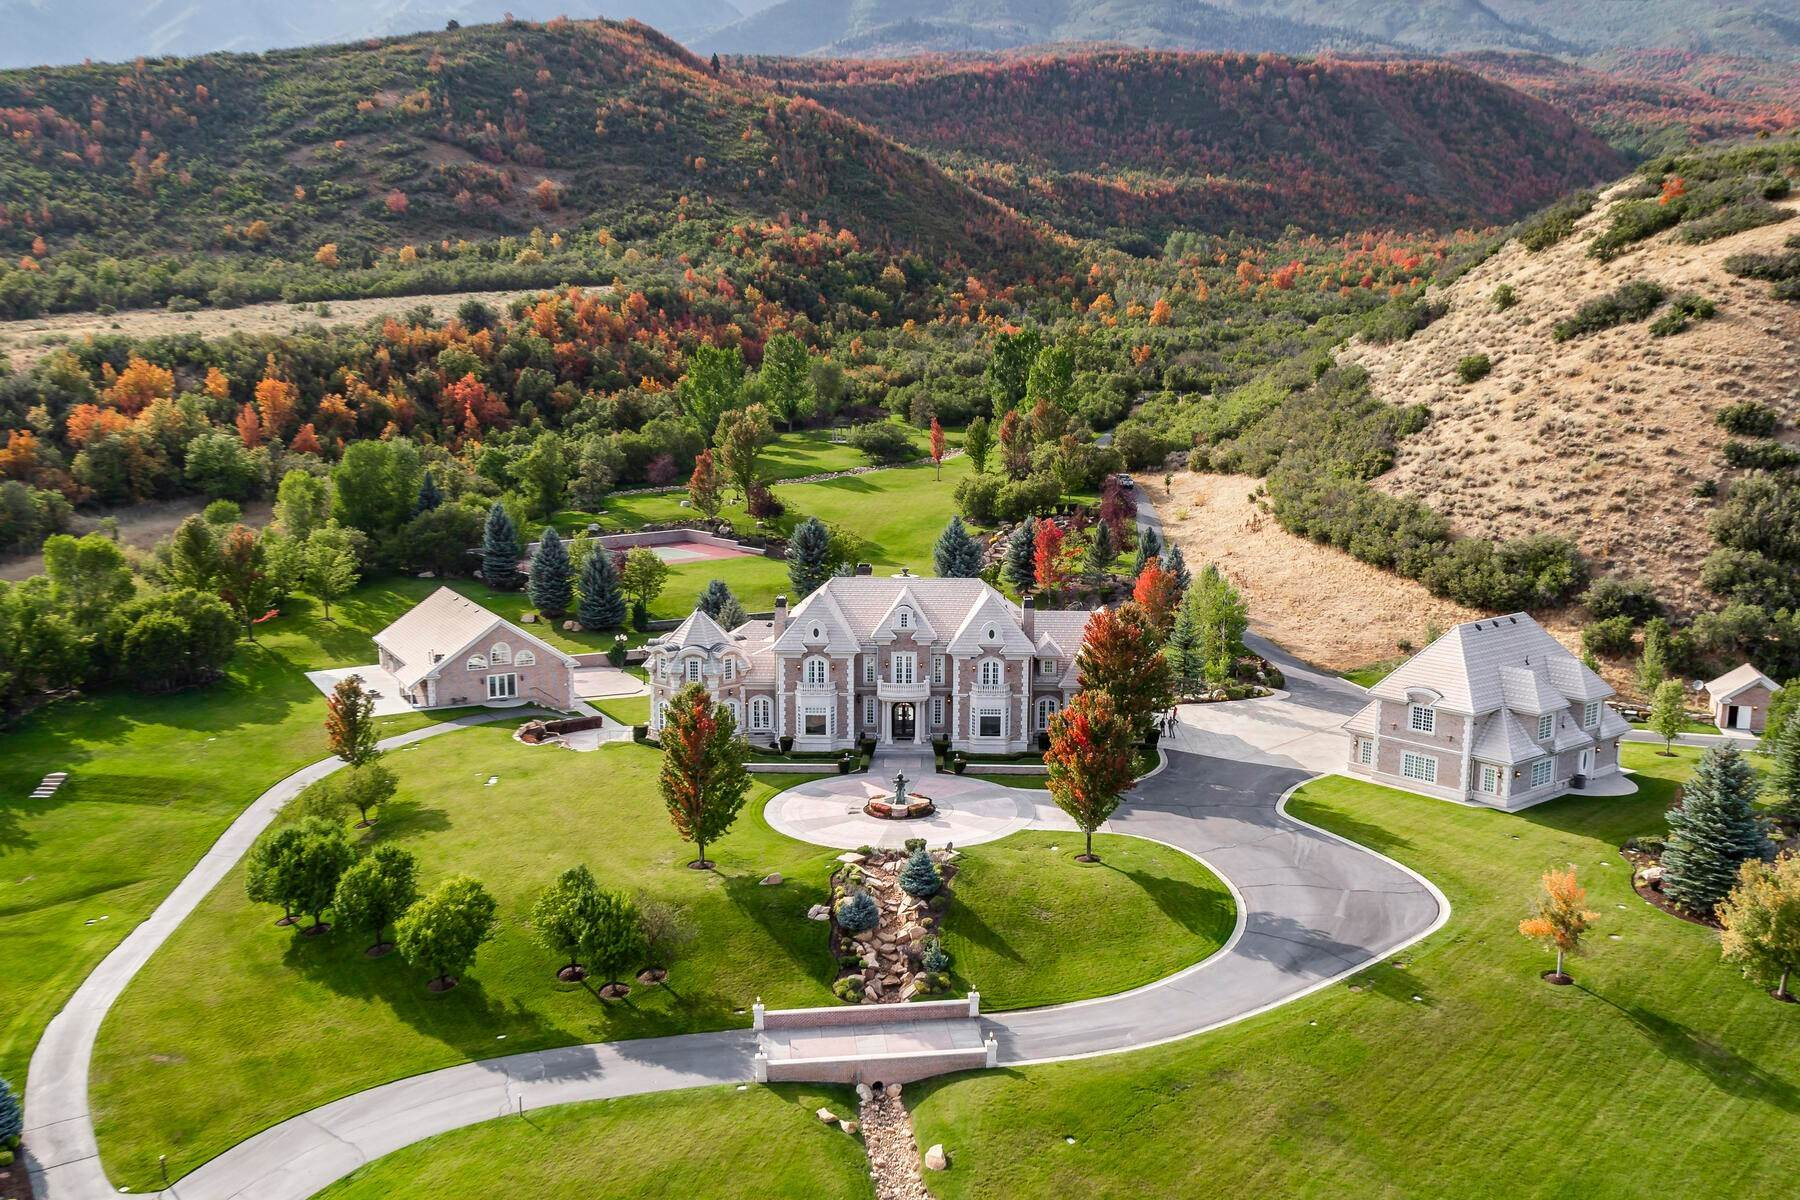 Property for Sale at Hobble Creek Ranch—Luxury Estate on 3,387 Acres 533 N Left Fork Hobble Creek Cyn, Springville, Utah, 84663 United States